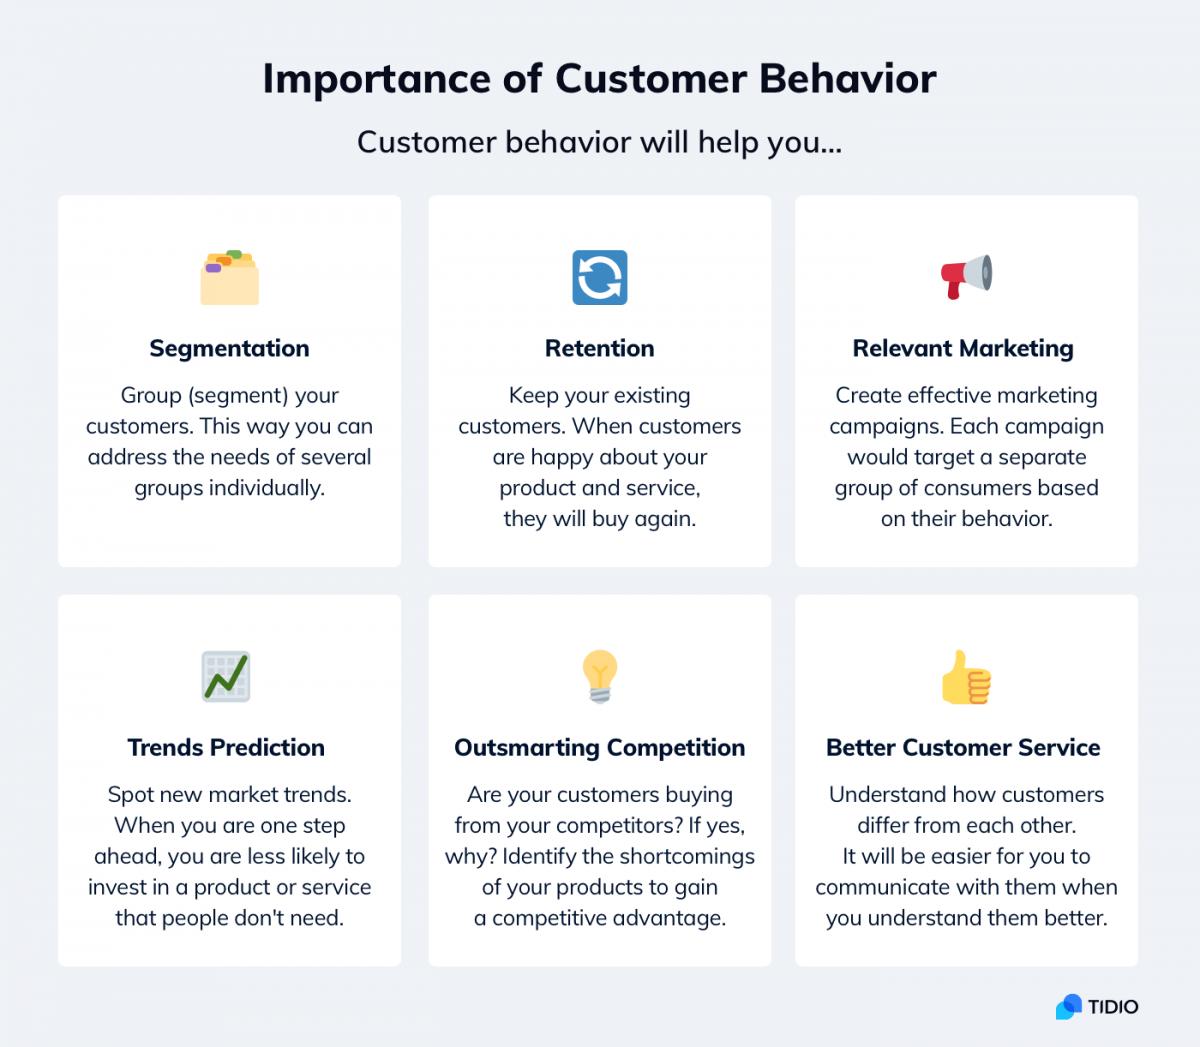 Importanc of customer behavior - infographic